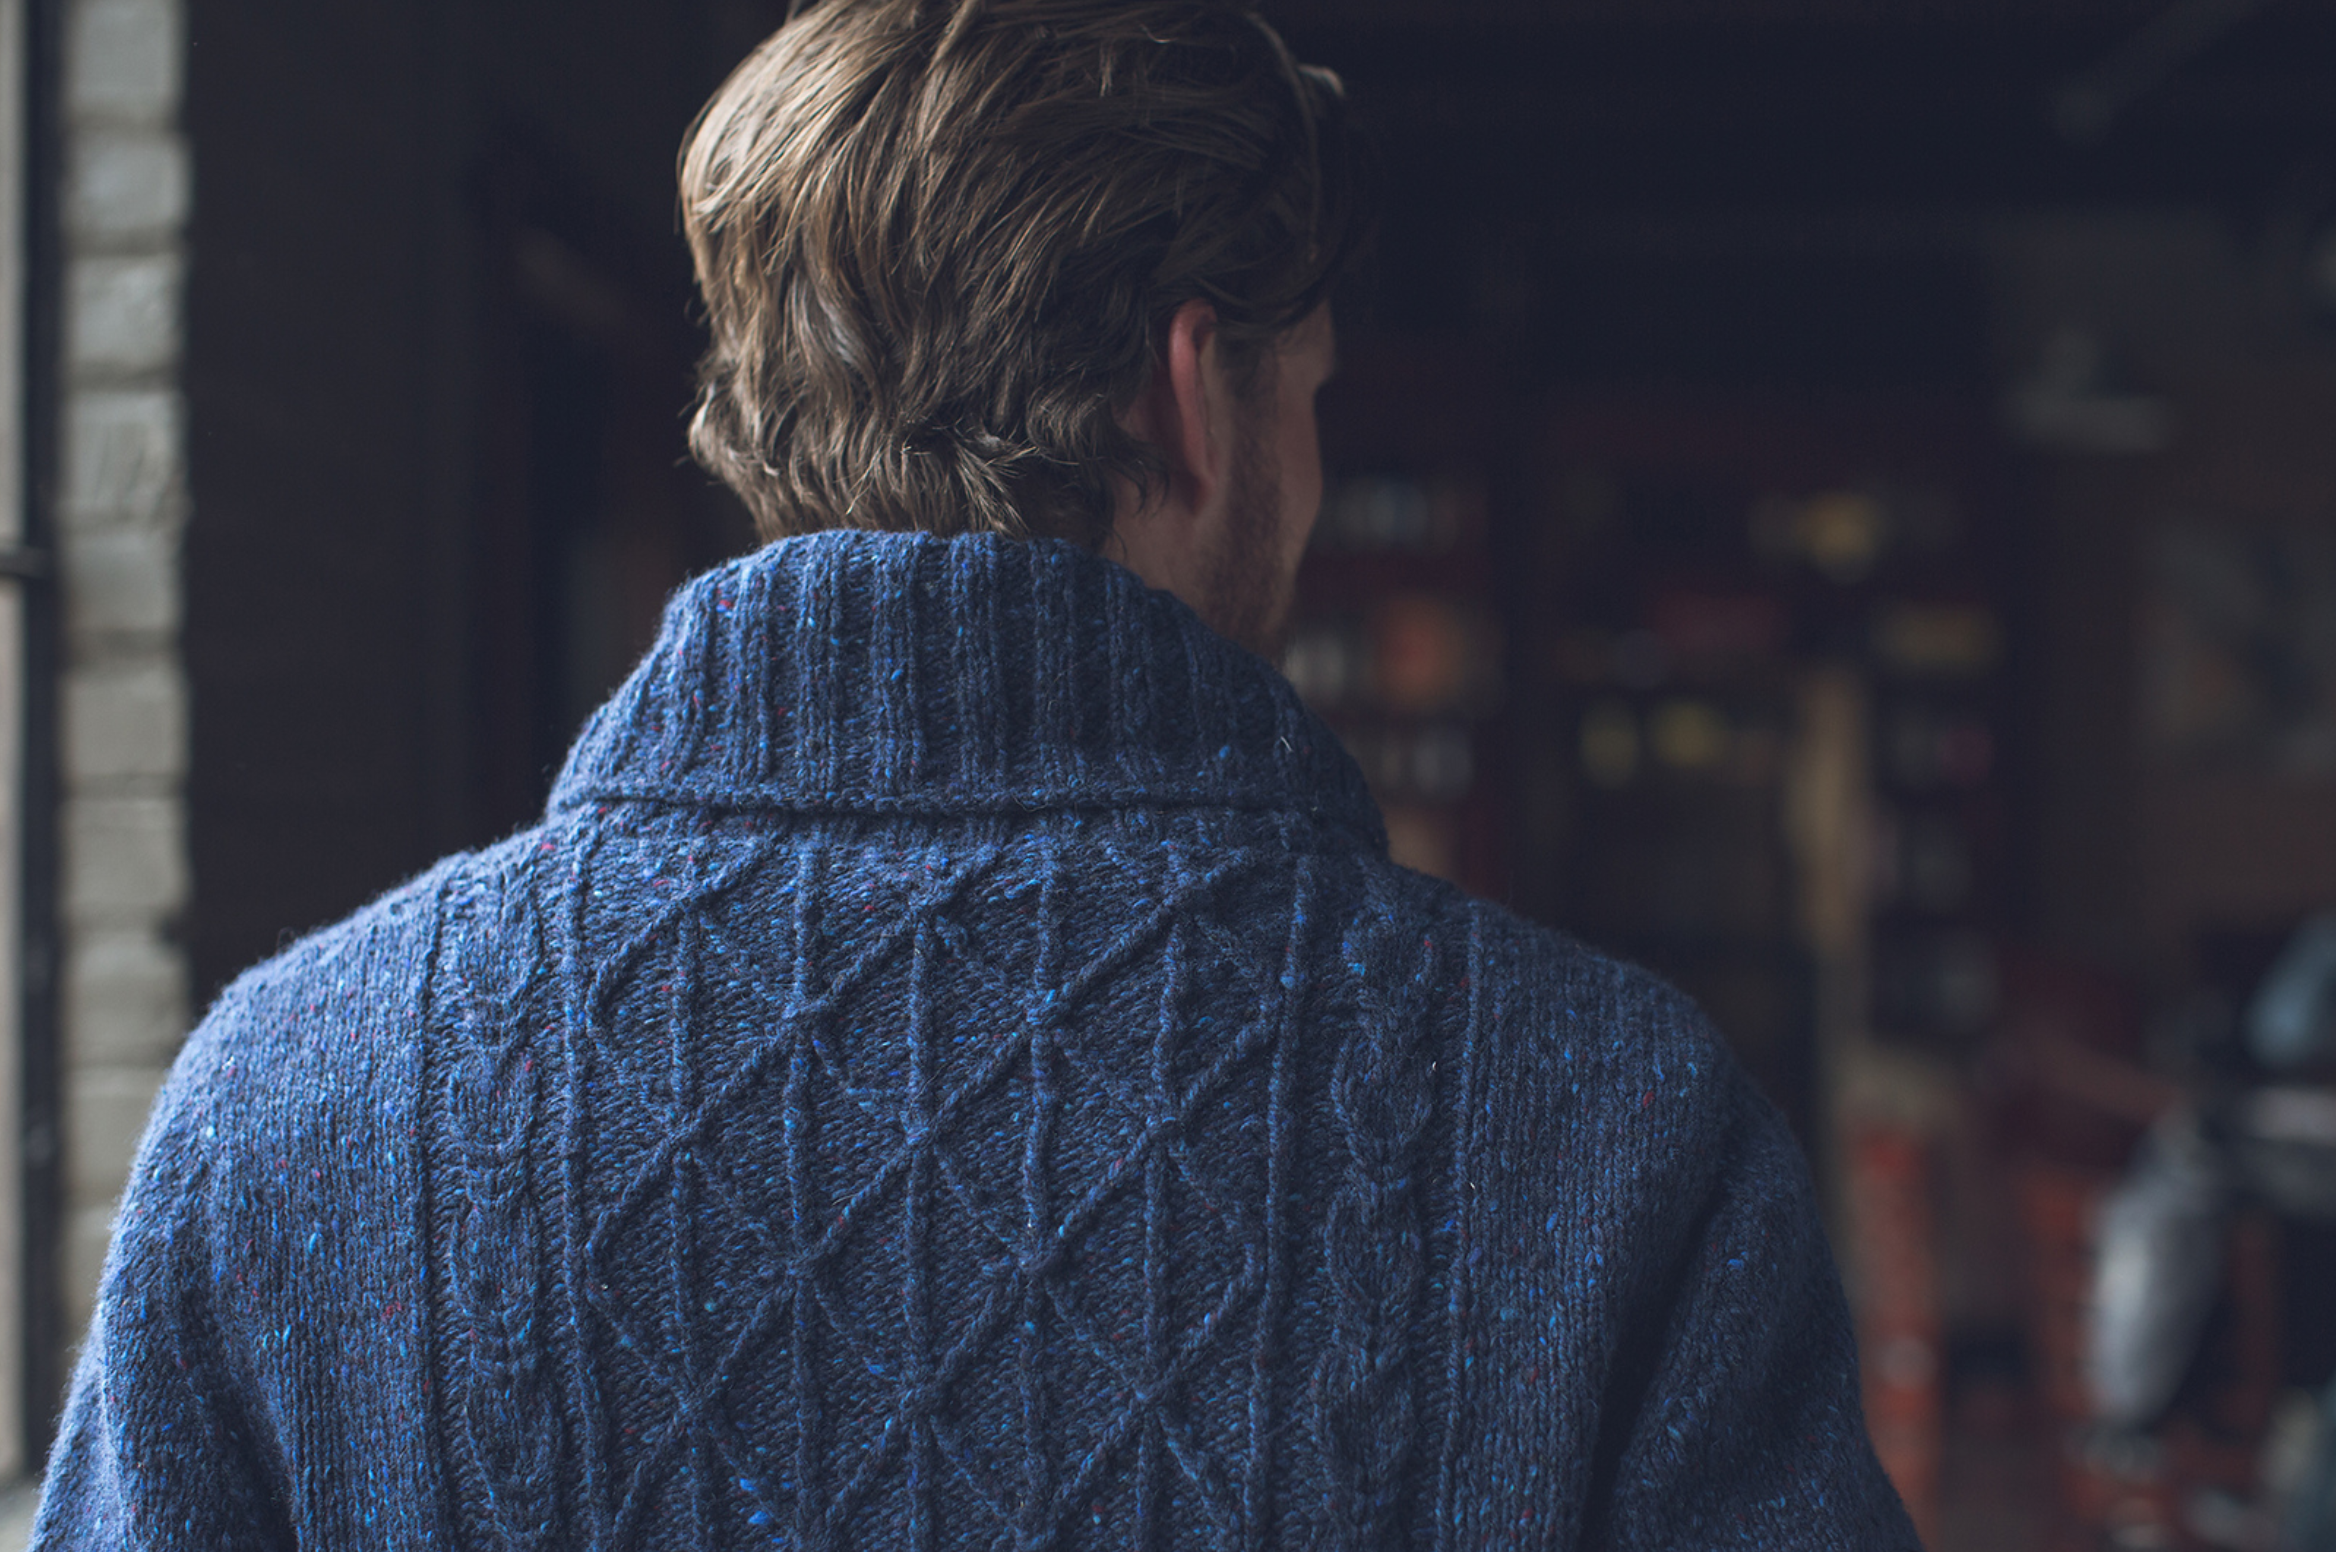 Interweave Knits WInter 2016 Donegal Sweater in The Fibre. Co Arranmore